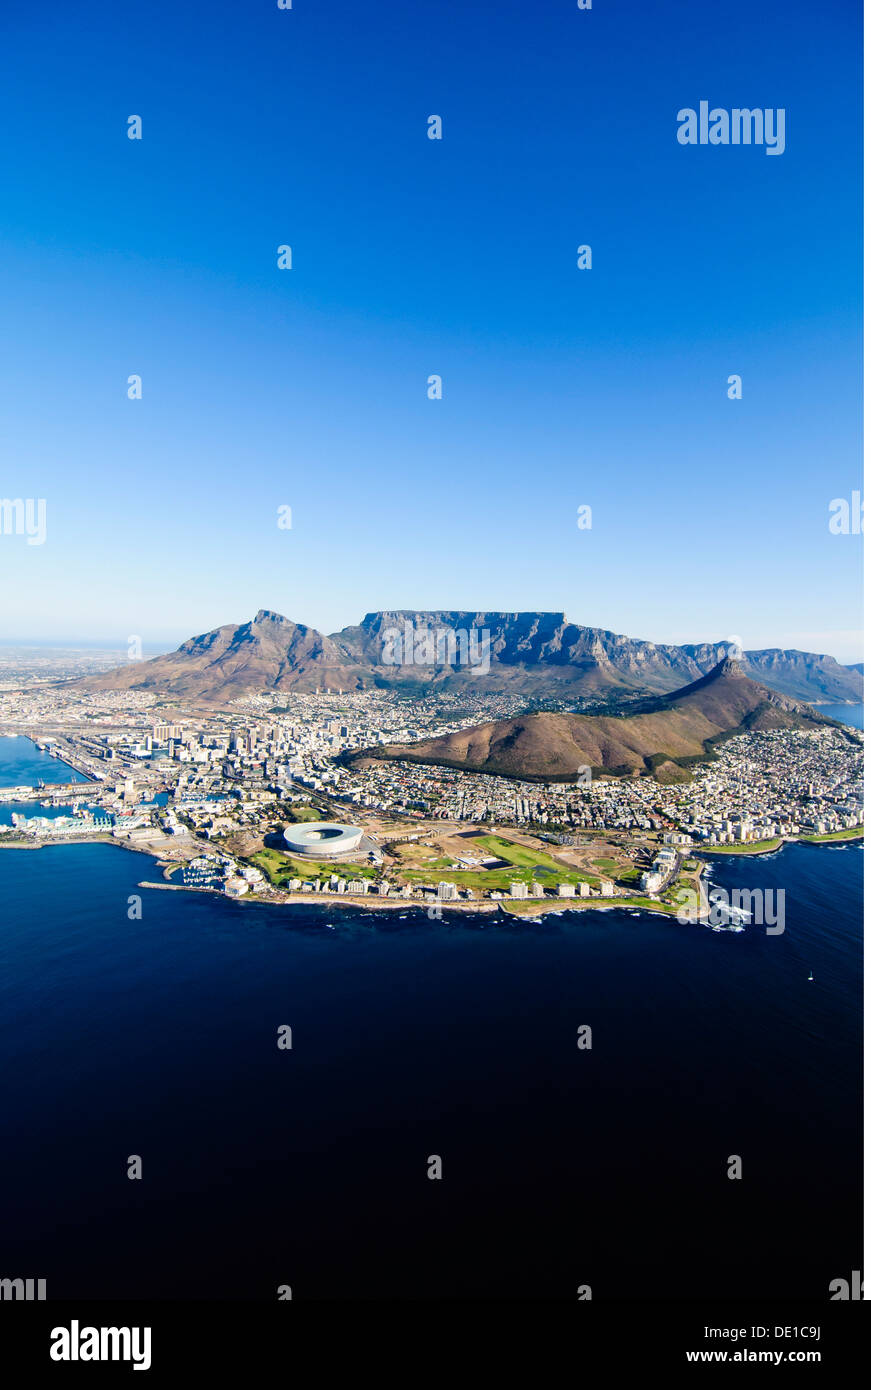 Geografia / viaggi, Sud Africa, Cape Town, fotografia aerea, Additional-Rights-Clearance-Info-Not-Available Immagini Stock